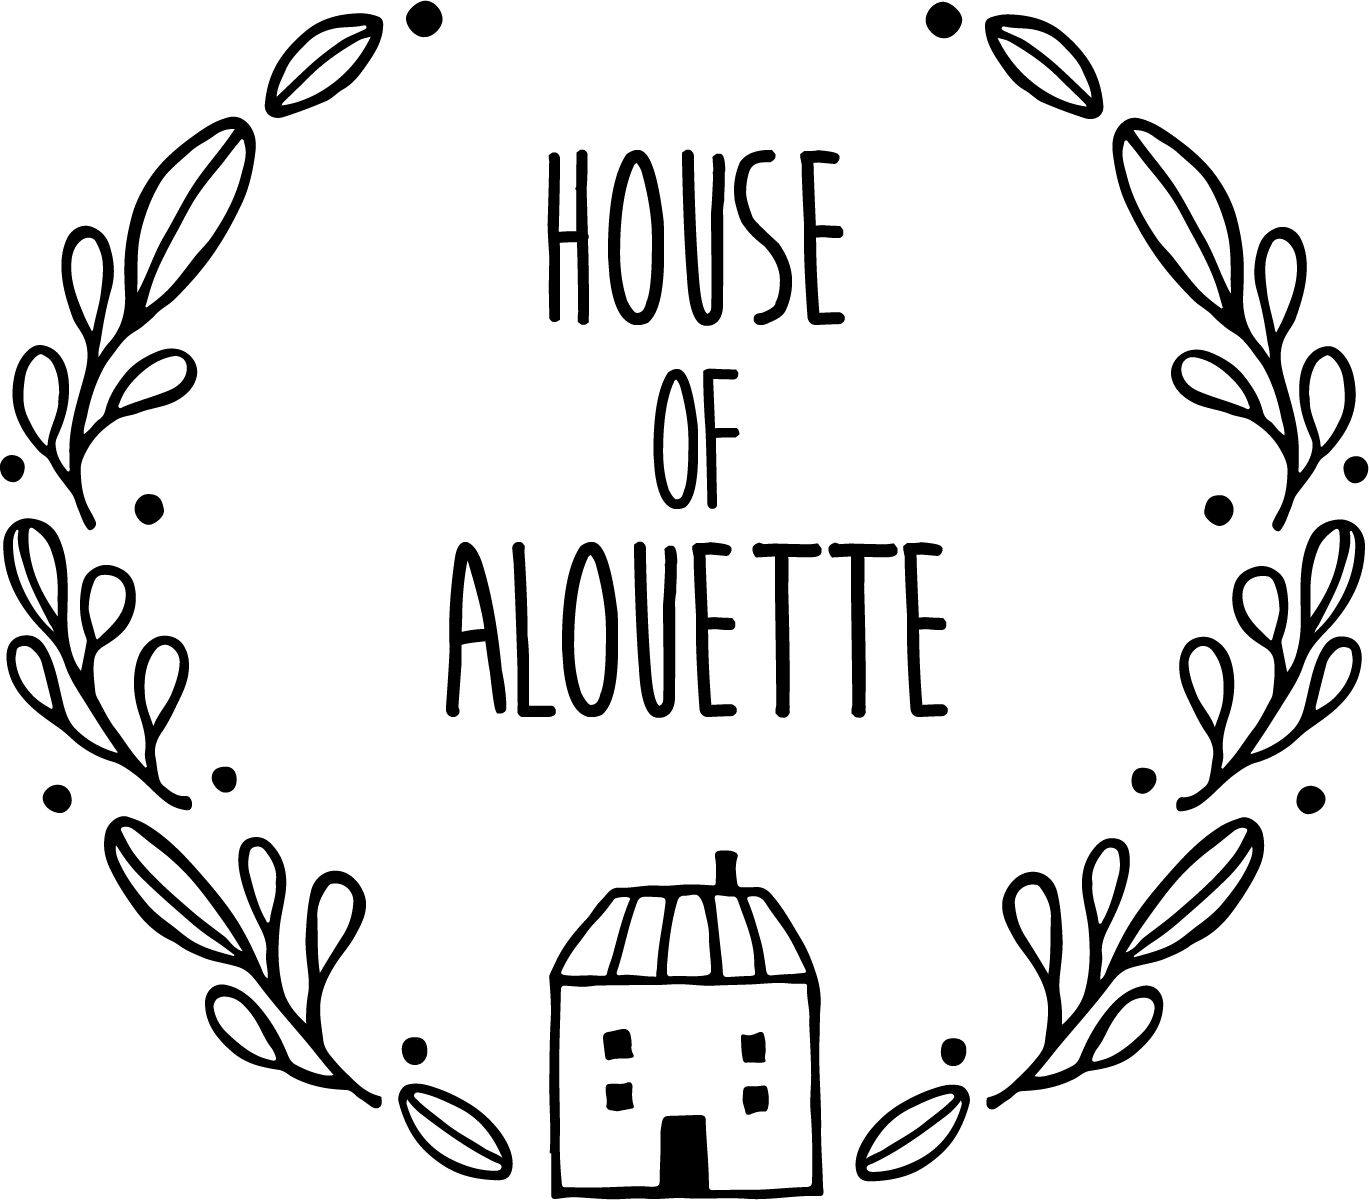 Sweet & Fresh Floral Design @ MPLS LAB - Sept 5 — House of Alouette